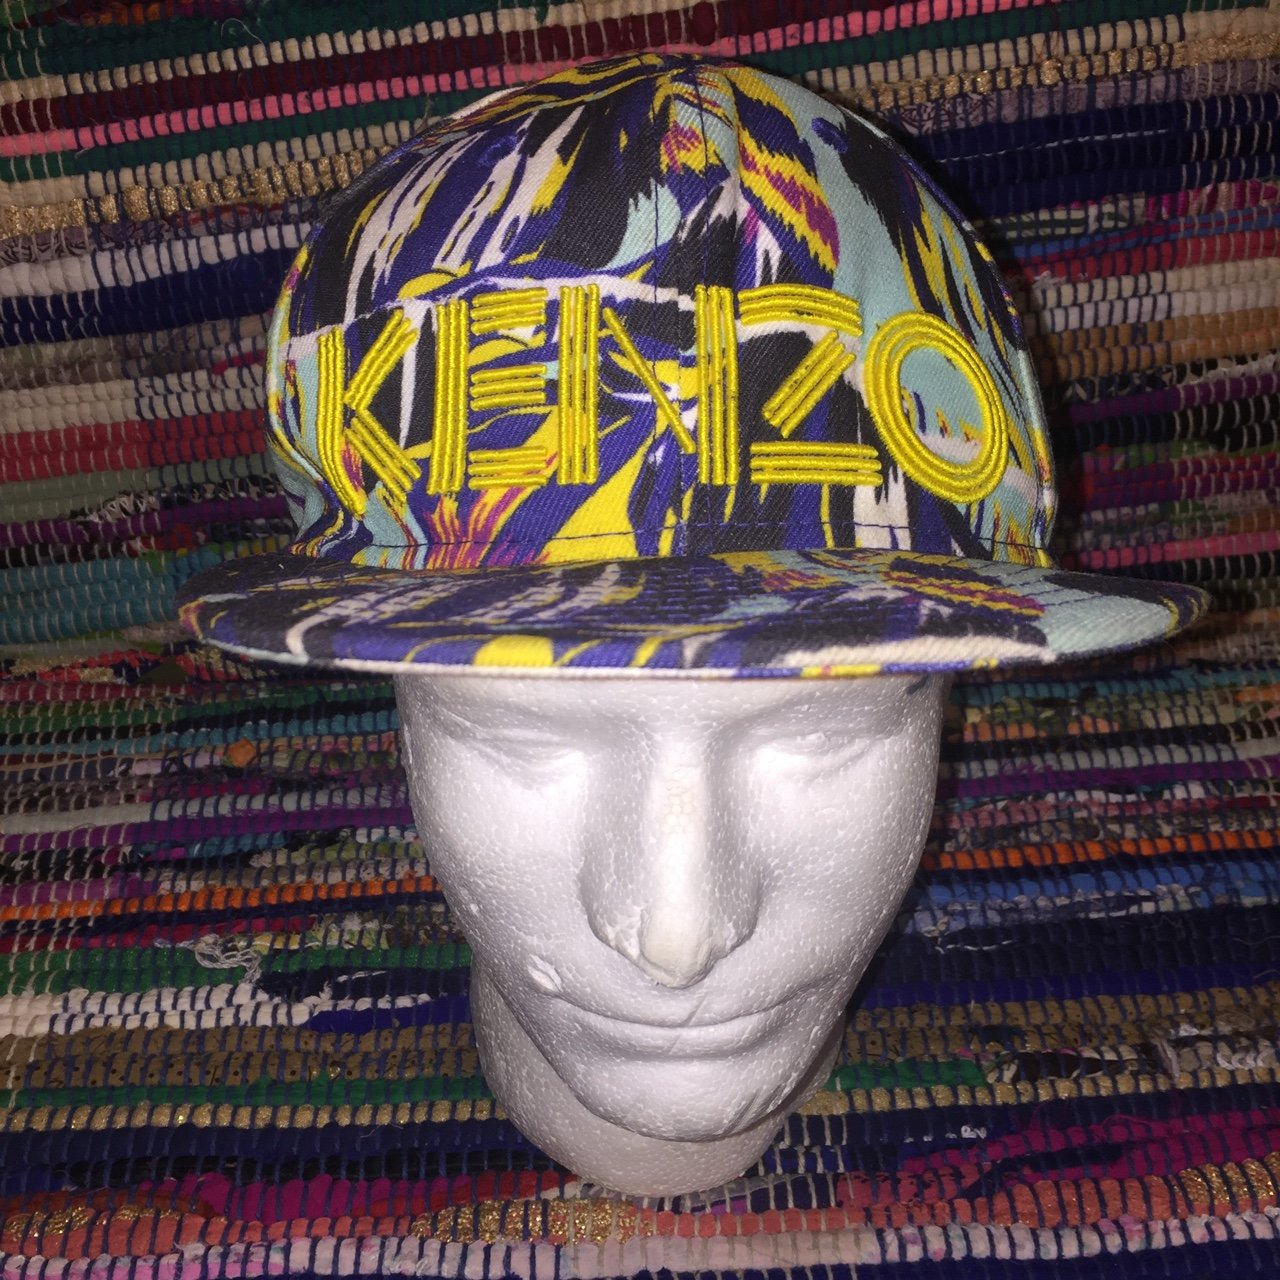 Limited Edition Kenzo Paris x New Era Collaboration Fitted 7 - Depop 2ee82521460